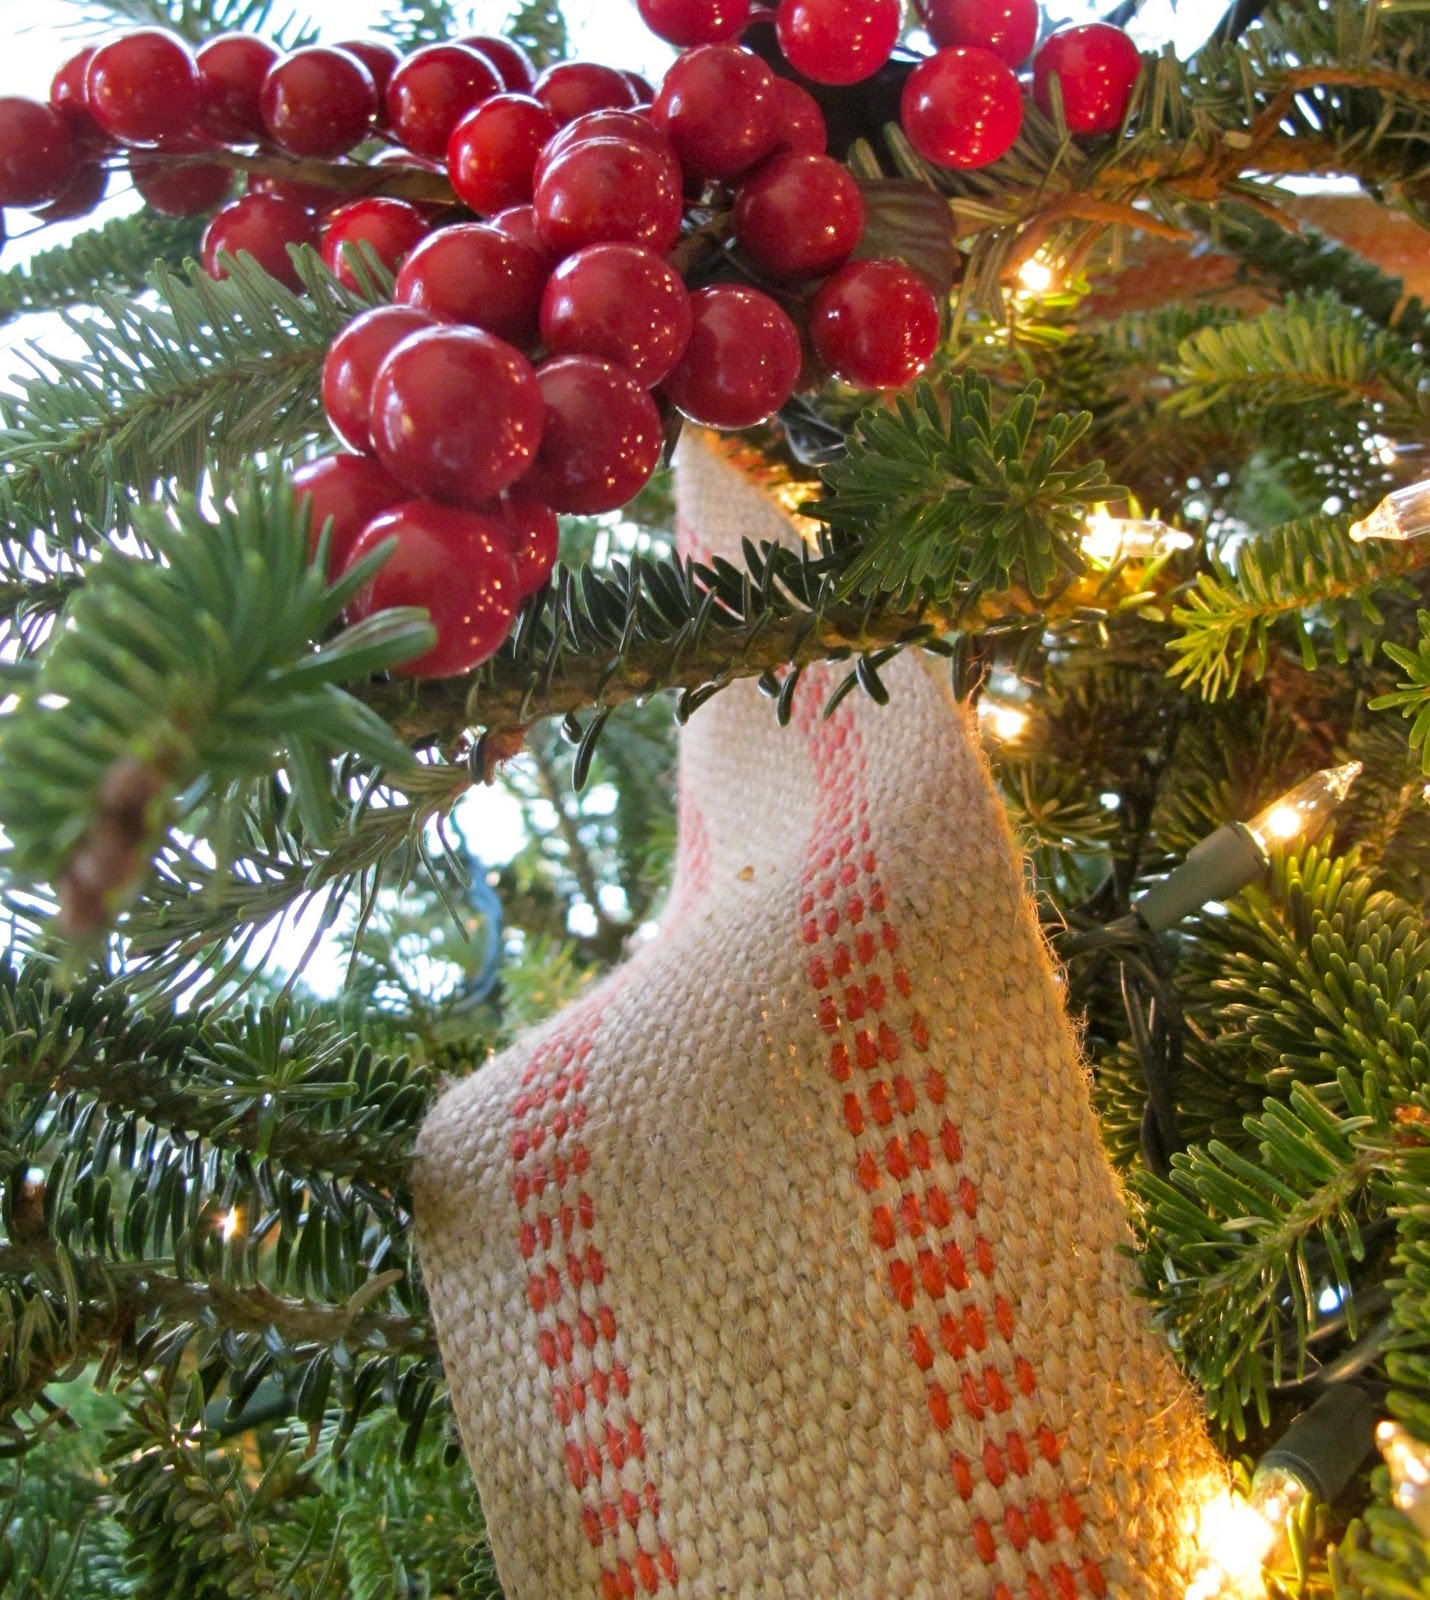 some of the details are frosted red balls the great lantern from my aunts shop red berries and burlap strapped